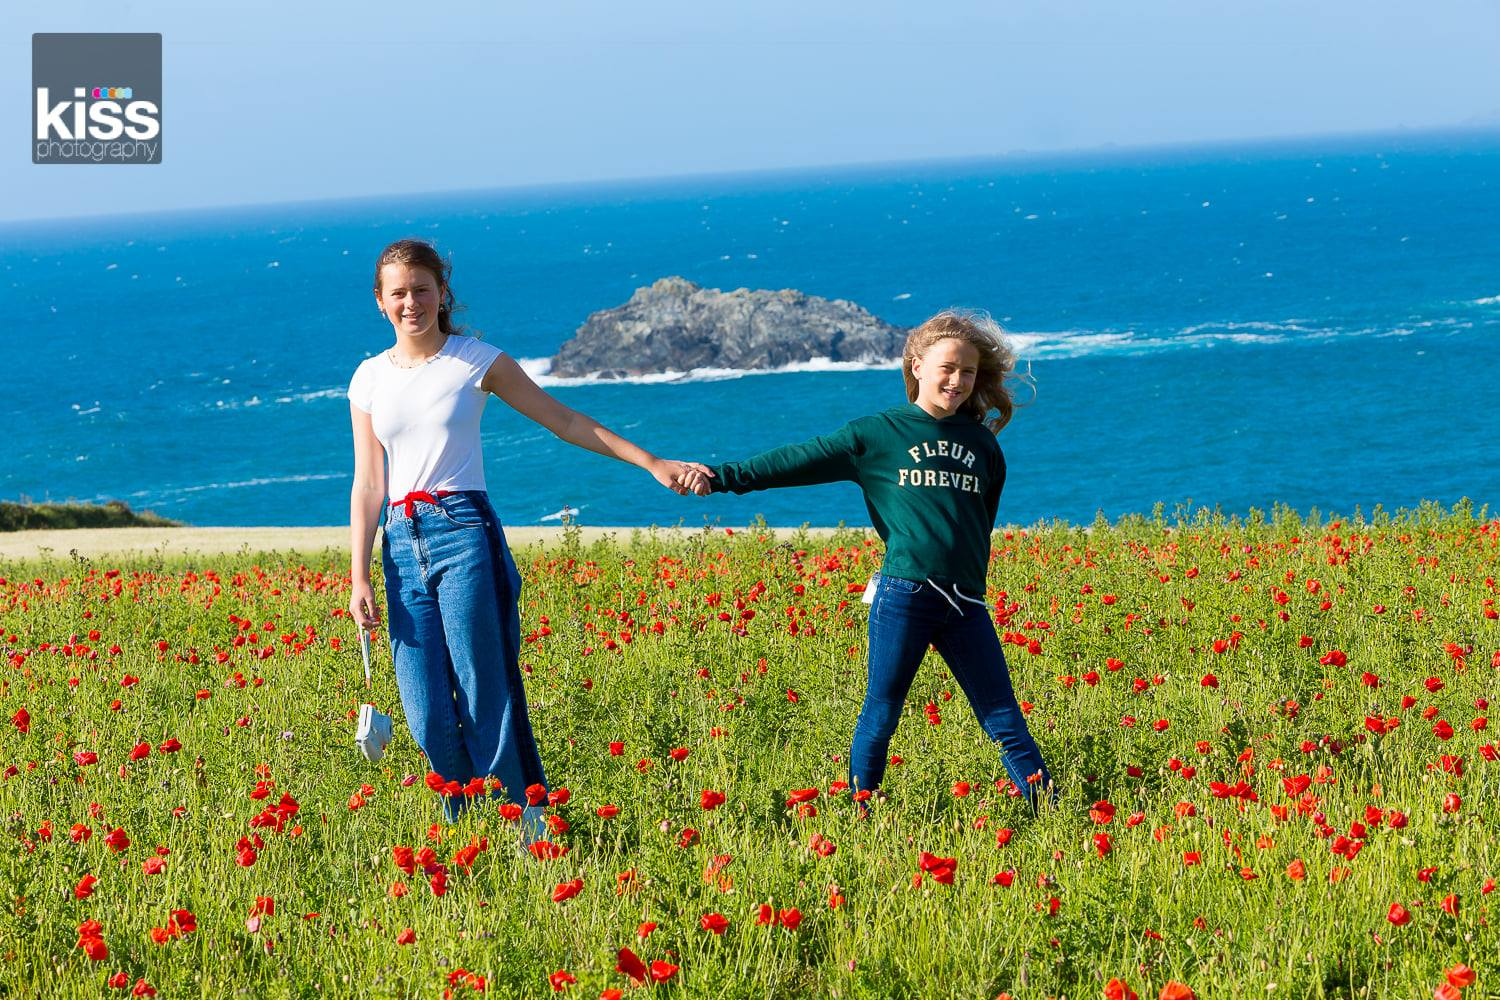 Sisters holding hands in poppy field overlooking the sea as part of a family photo shoot in st ives